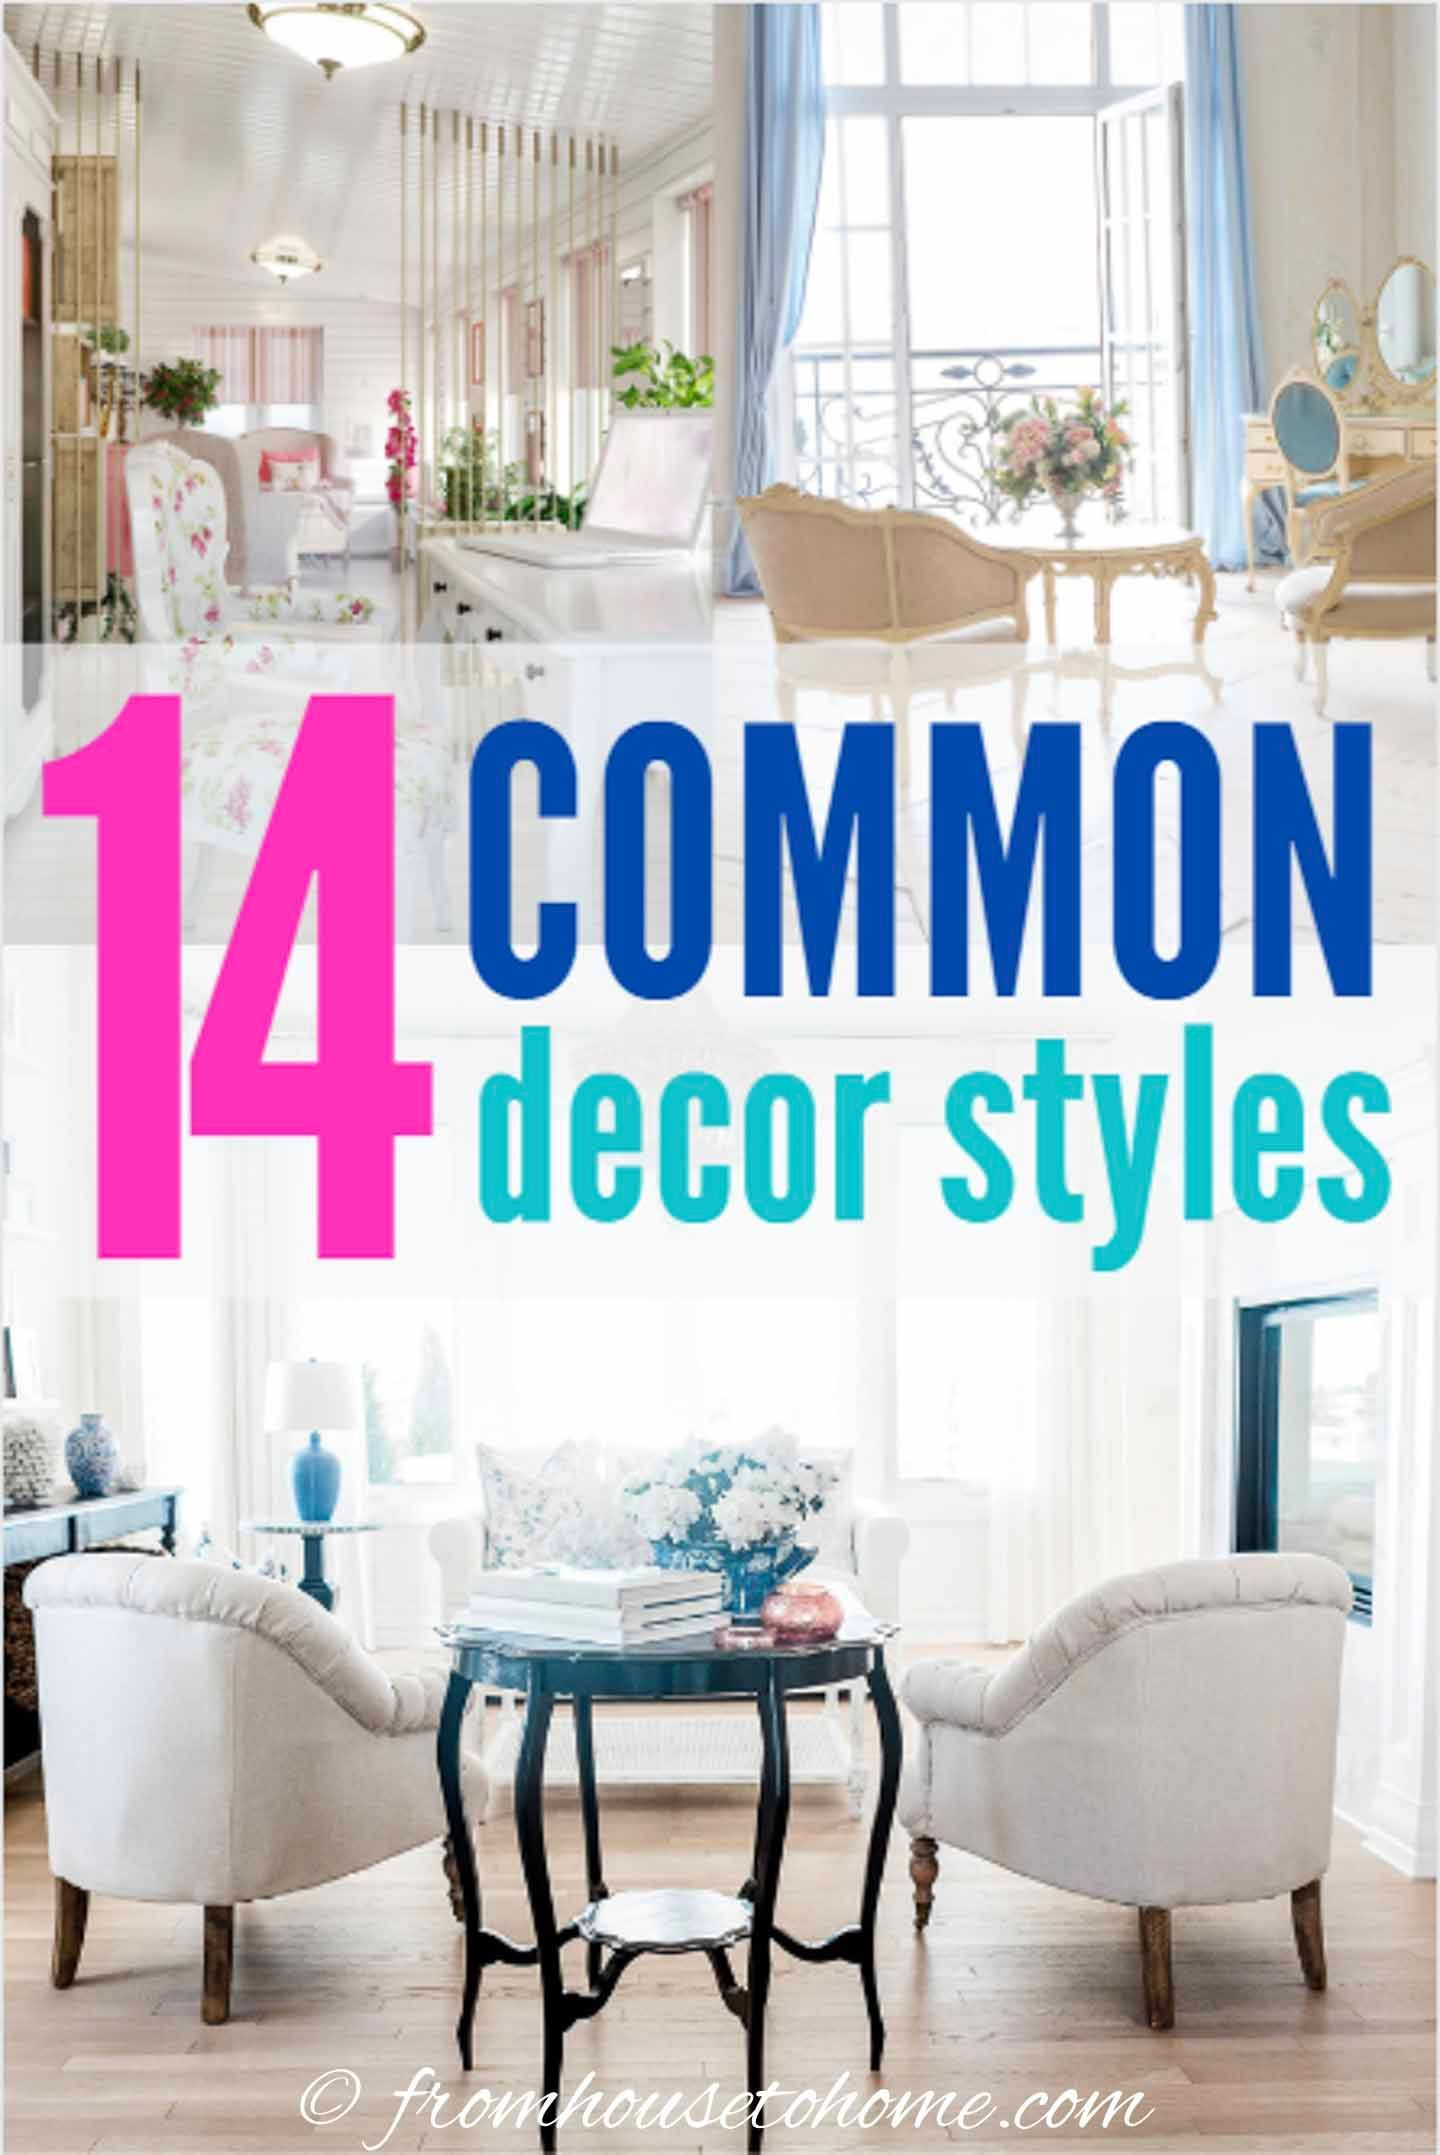 Trying To Find Your Interior Design Style Let The Interior Decorating Styles Matrix Help You To Choose The Styles Tha